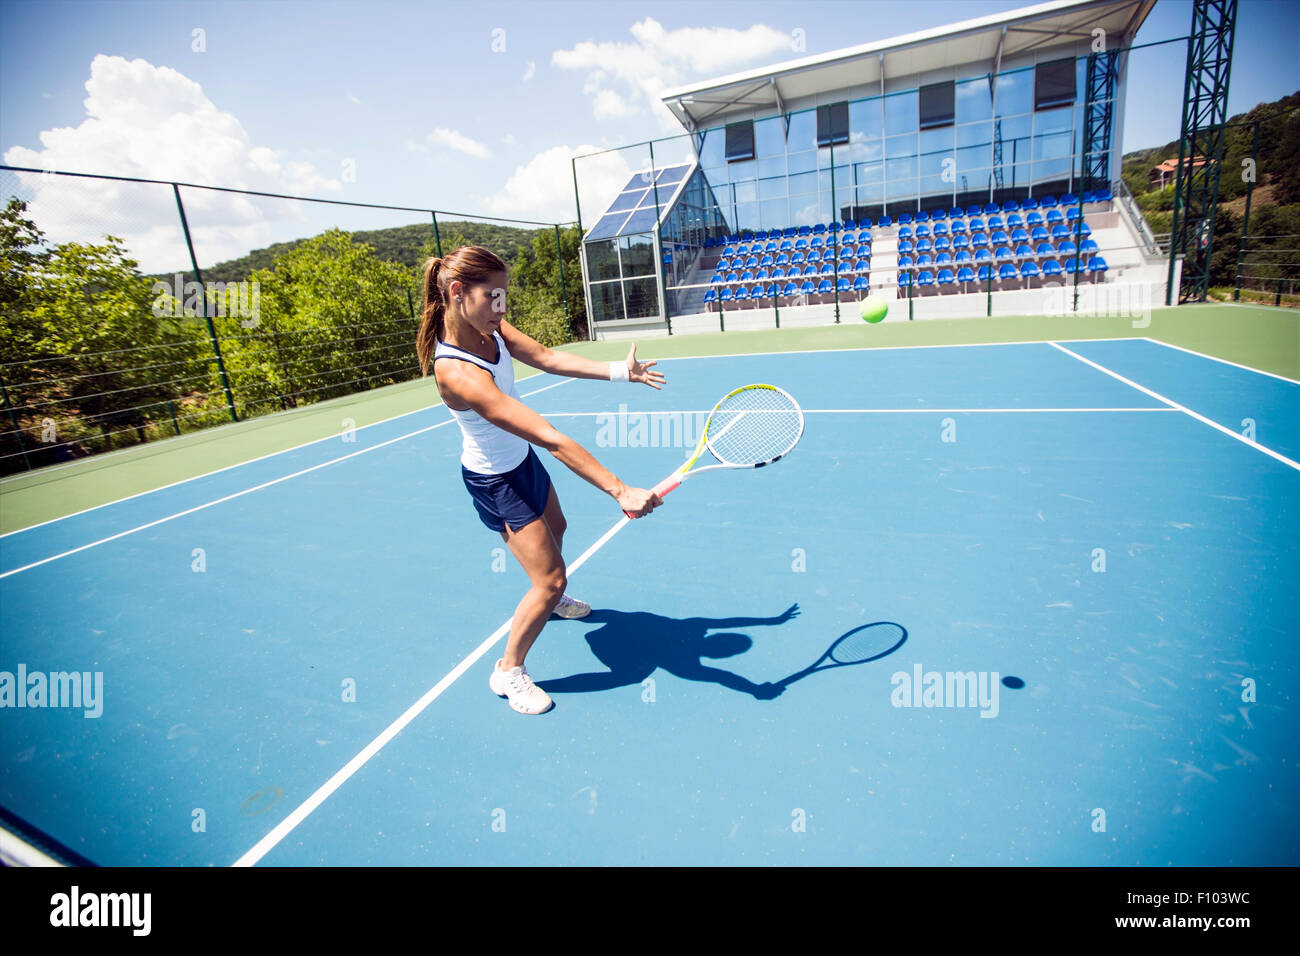 Female tennis player performing a drop shot on a nice blue court Stock Photo